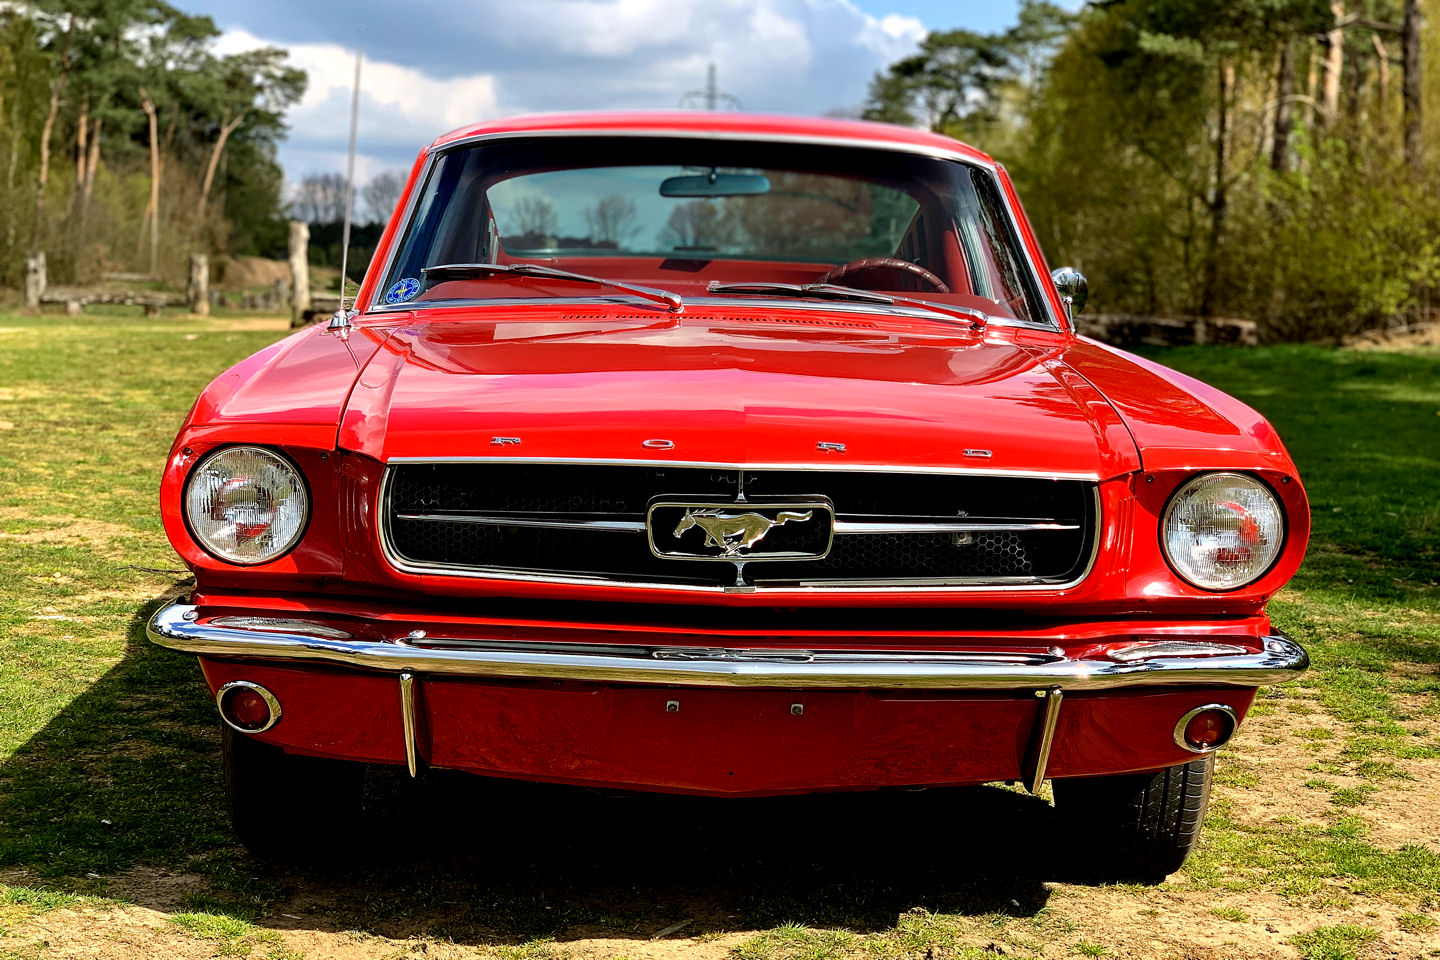 Very nice and good looking a highly collectable mustang and a great car to enjoy in the weekend an exceptional classic and it does not get much better so